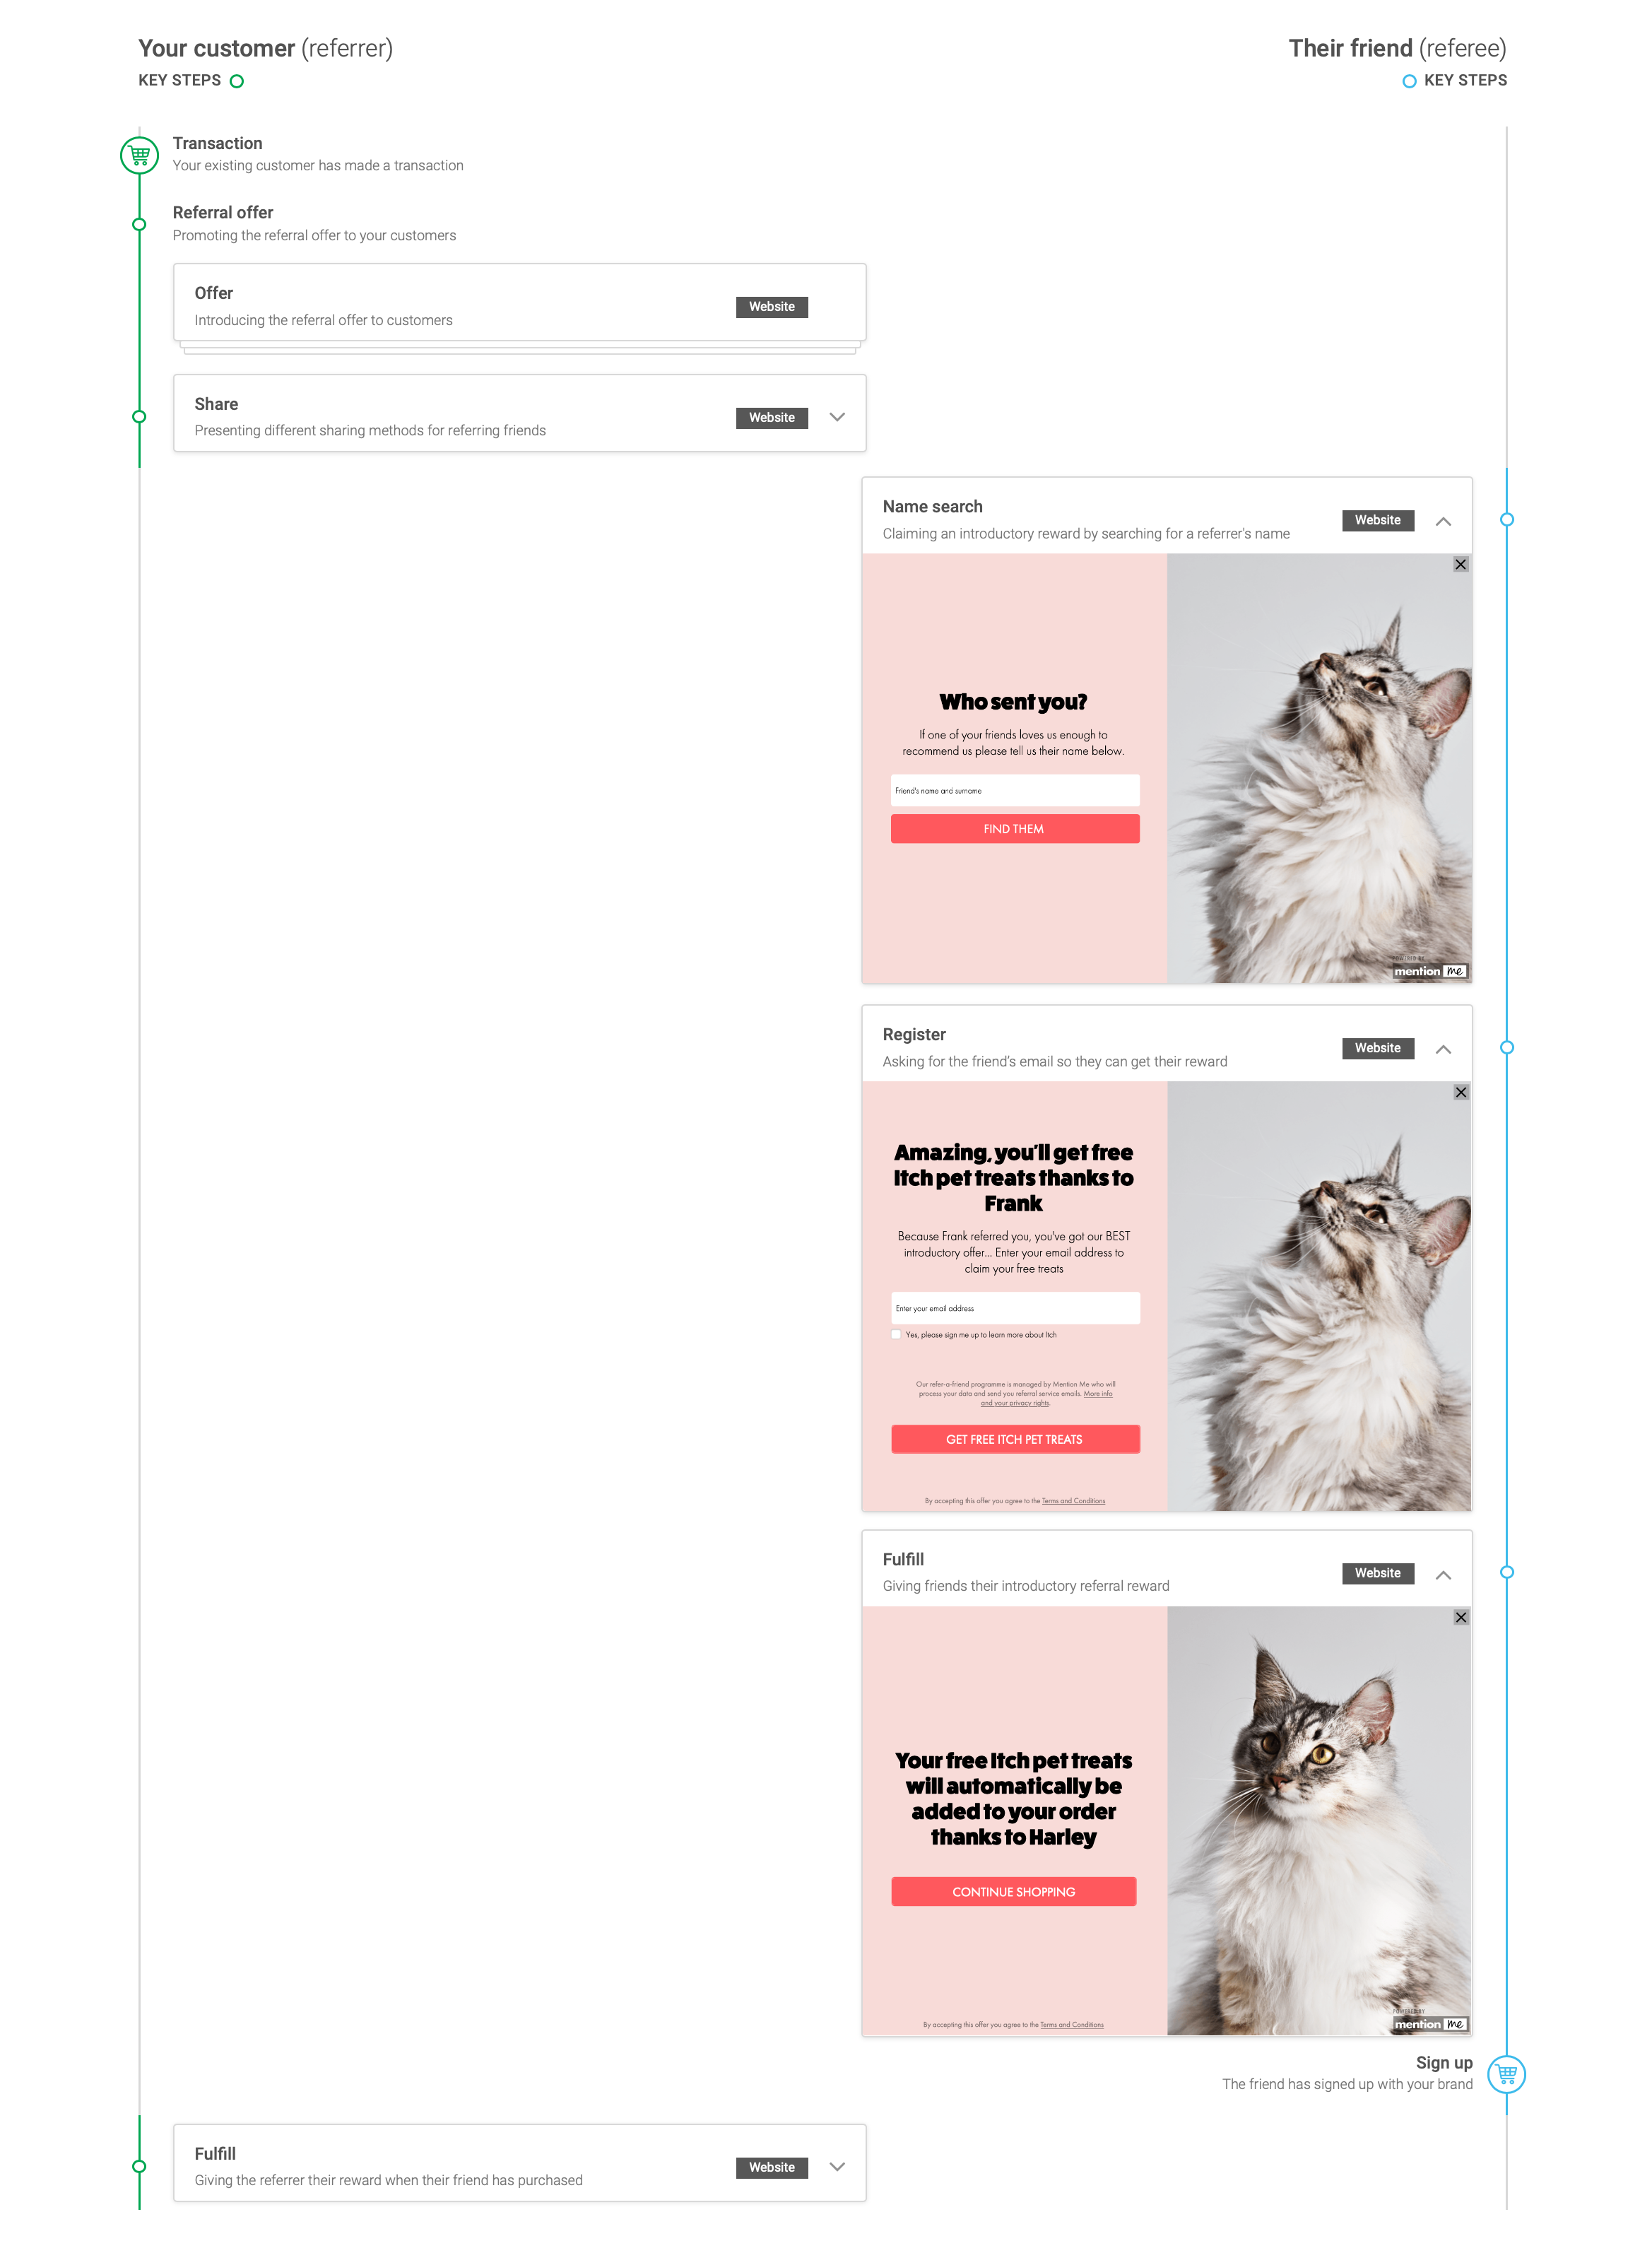 Preview section in Mention Me platform